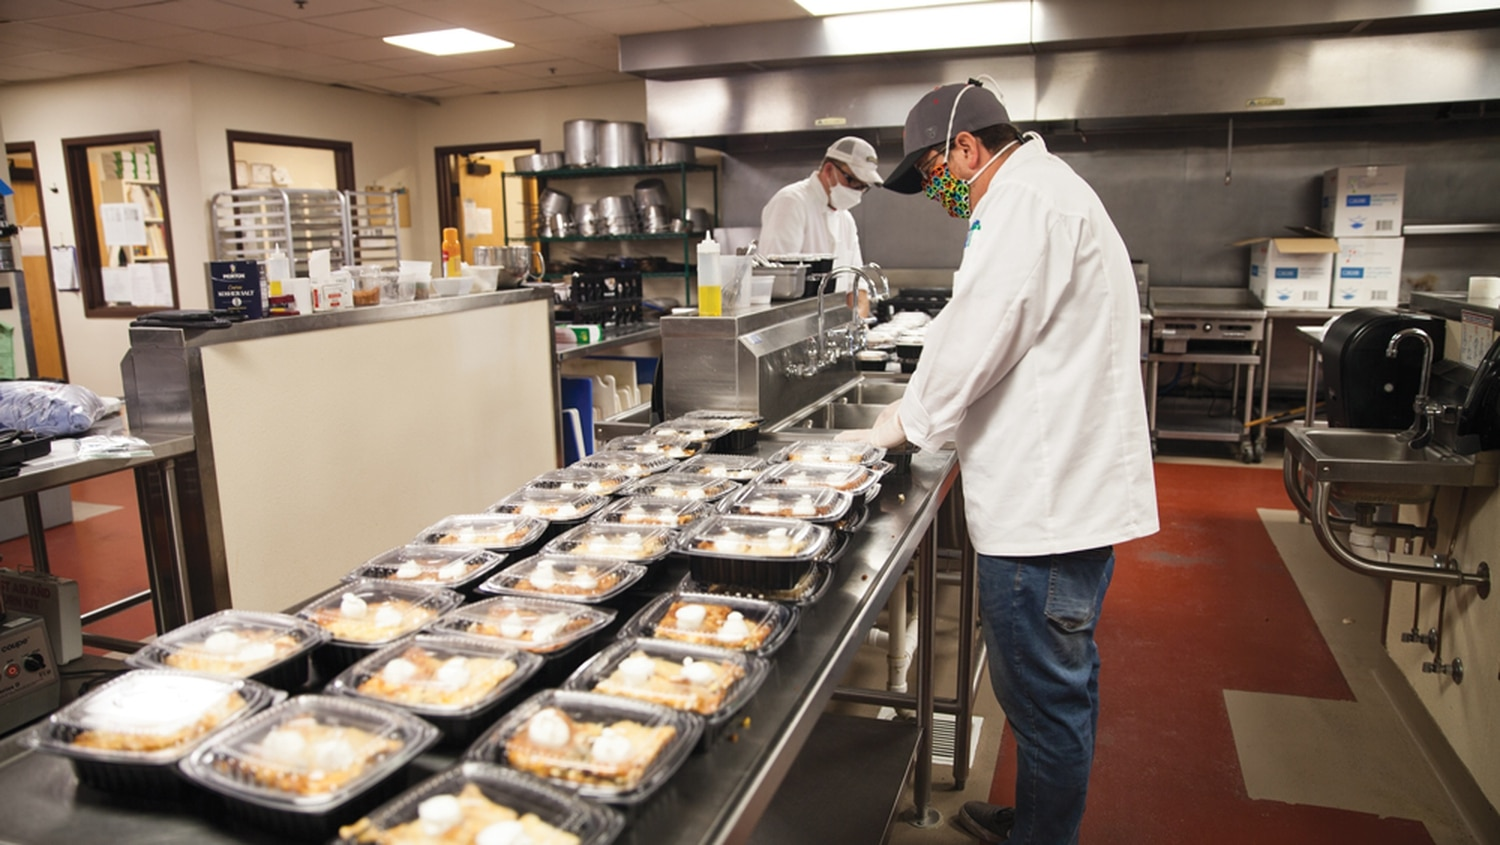 Faculty from the SFCC culinary arts department prepare ready-to-eat meals.